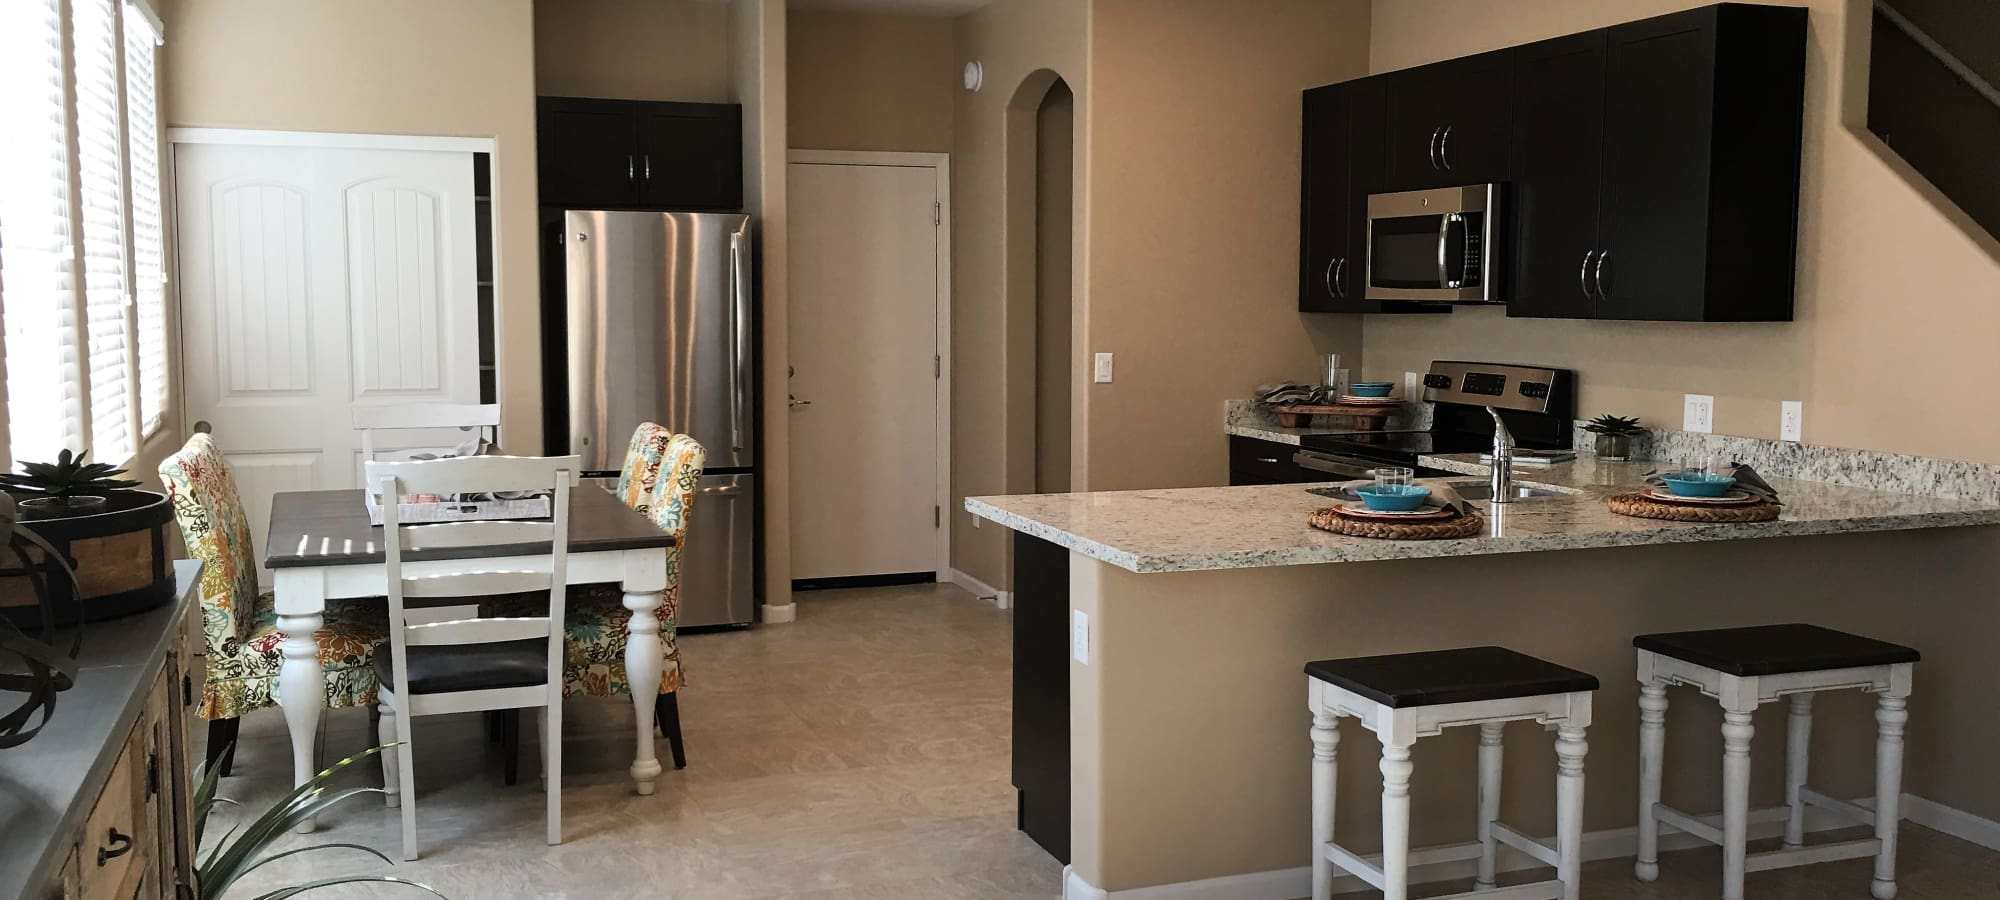 Kitchen and dining room at Vistancia in Peoria, Arizona